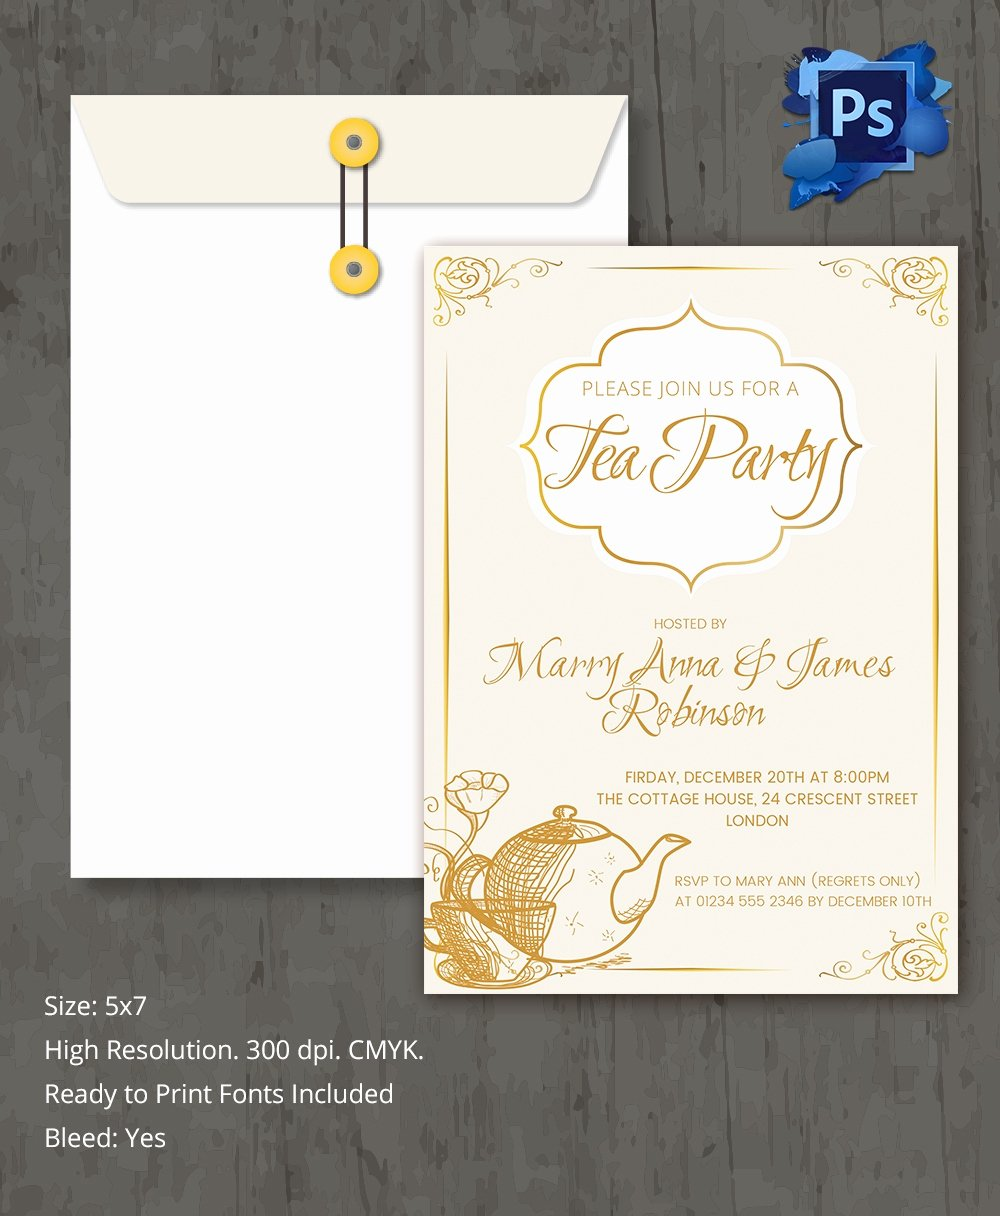 Tea Party Invitation Template Fresh 22 Tea Party Invitation Templates